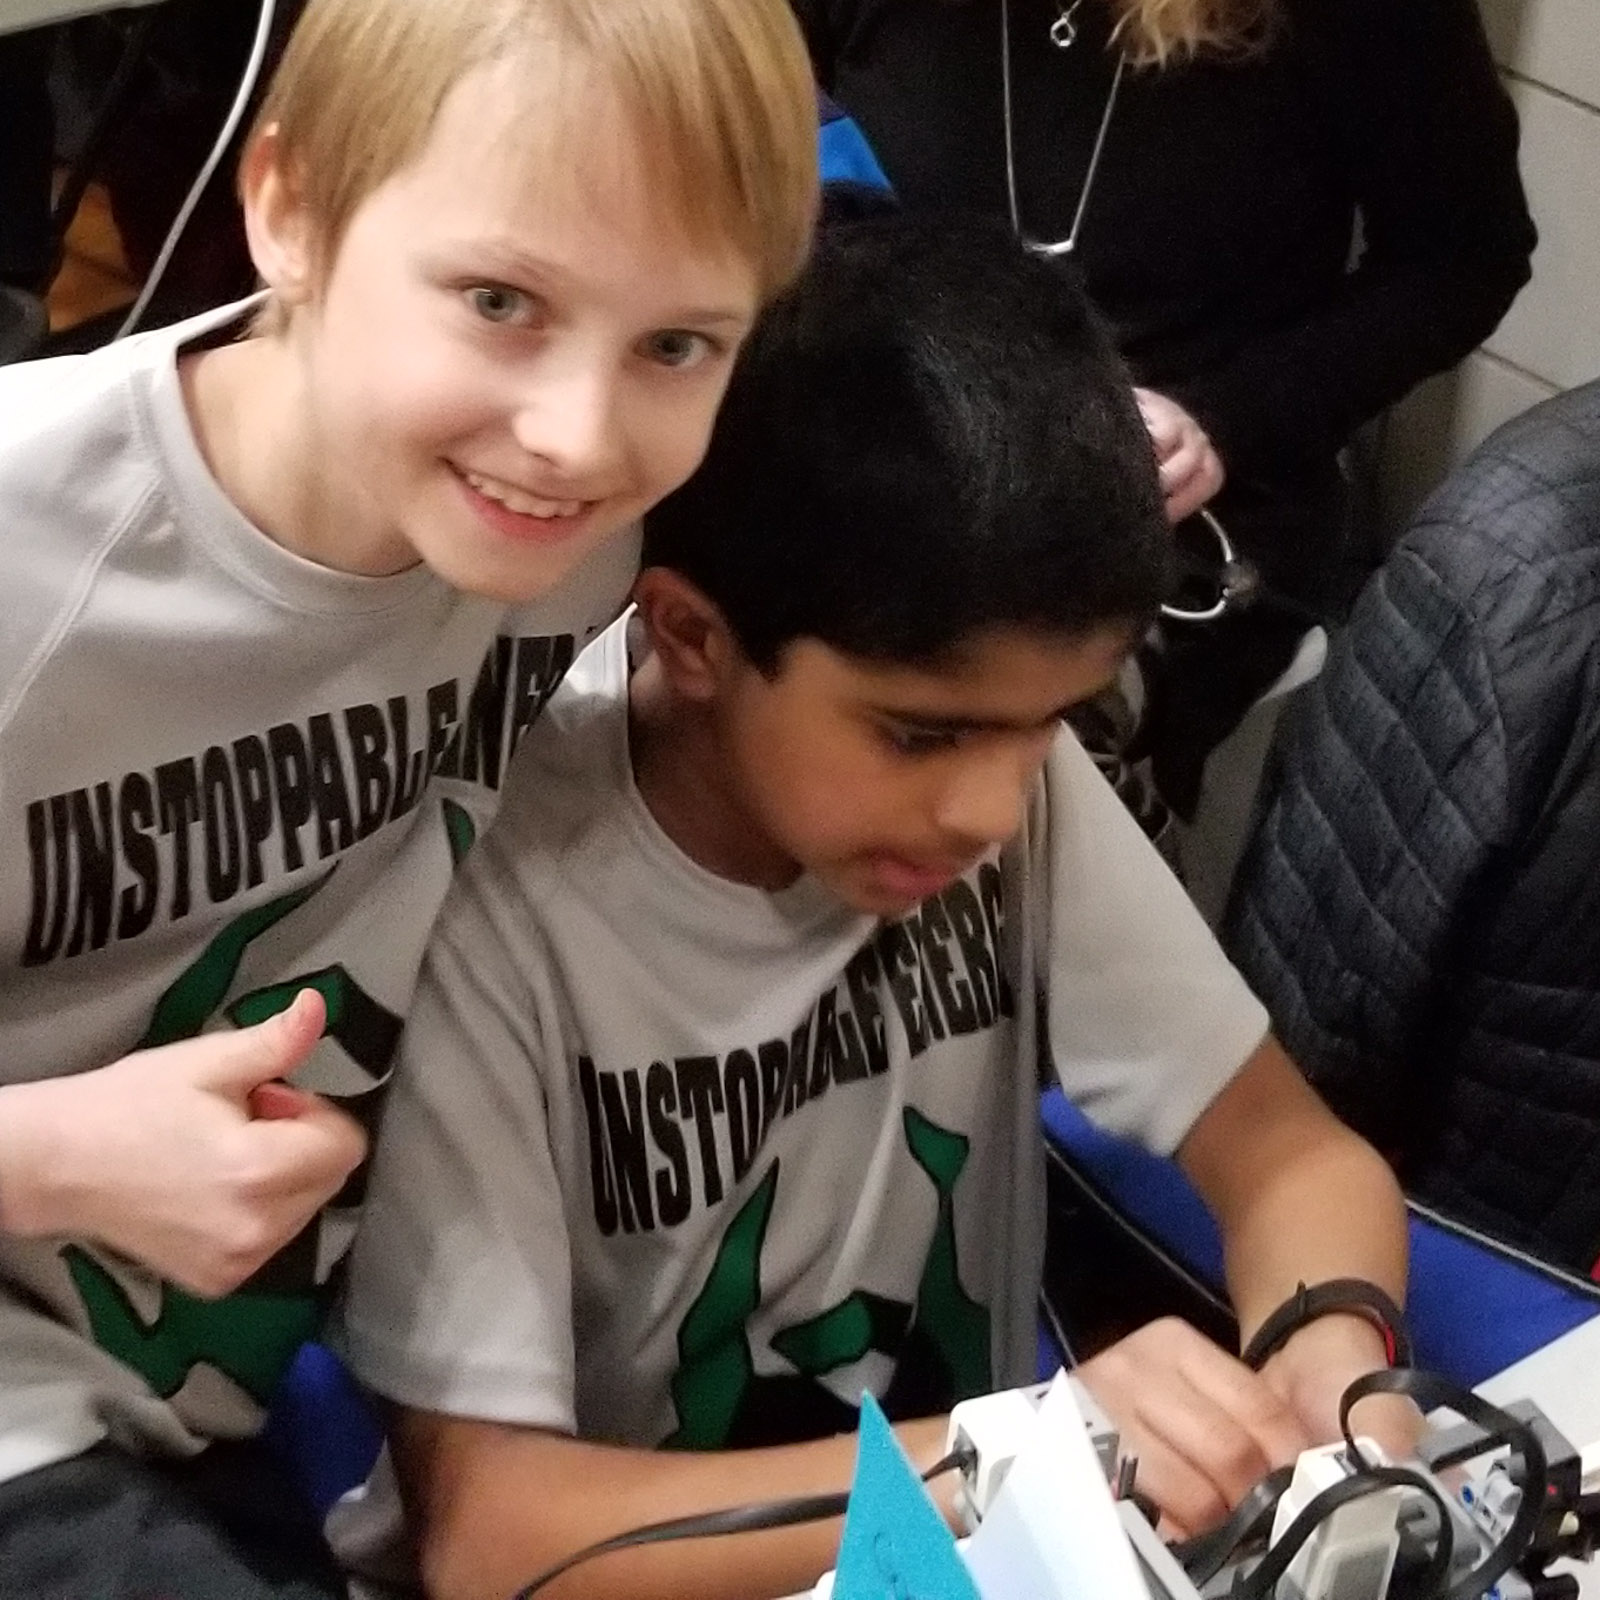 2018 Lego Robotics Competition - Team Unstoppable Energy-5